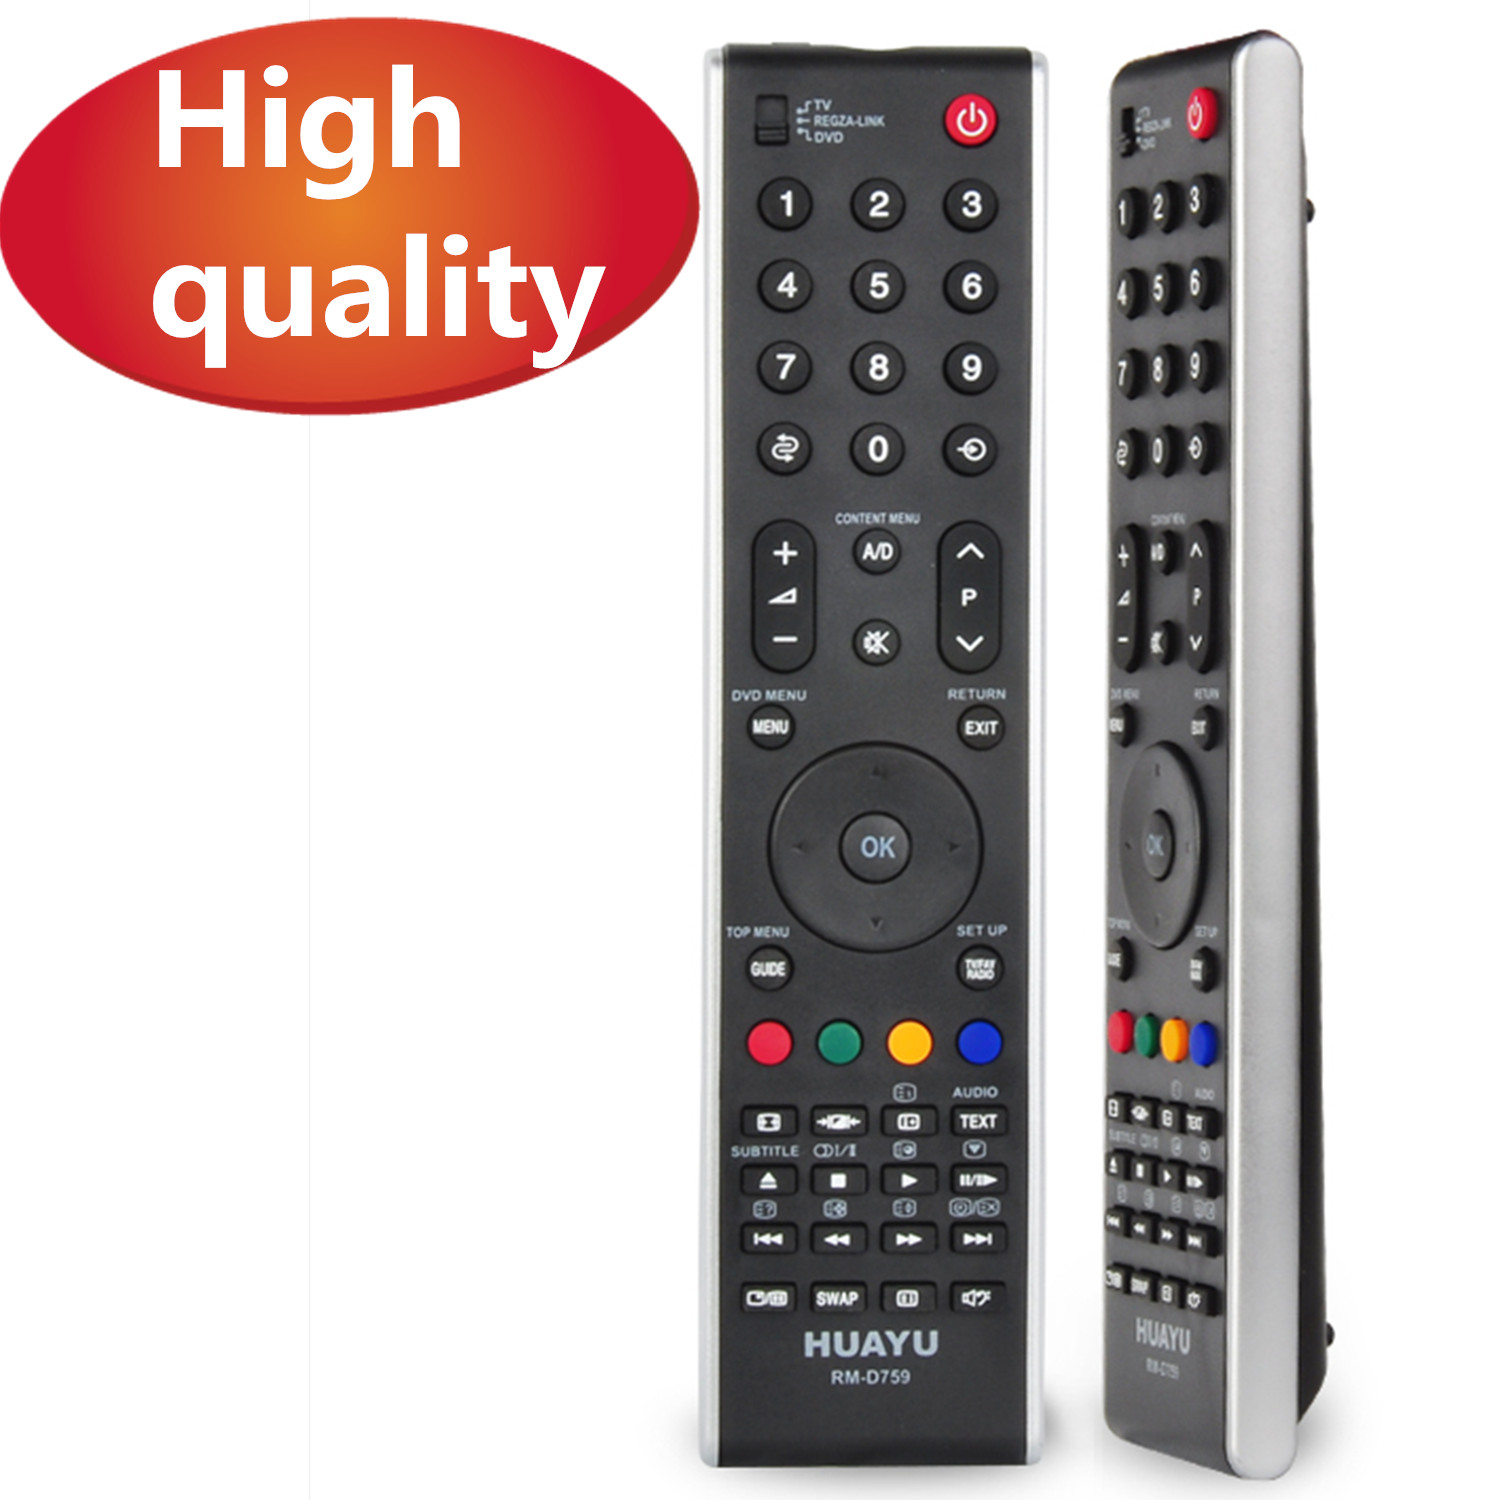 remote control suitable for toshiba tv CT90327 CT-90327 CT-90307 ct90307 CT-90296 CT90296 3D SMART CT-9995 ct-865 CT-90273